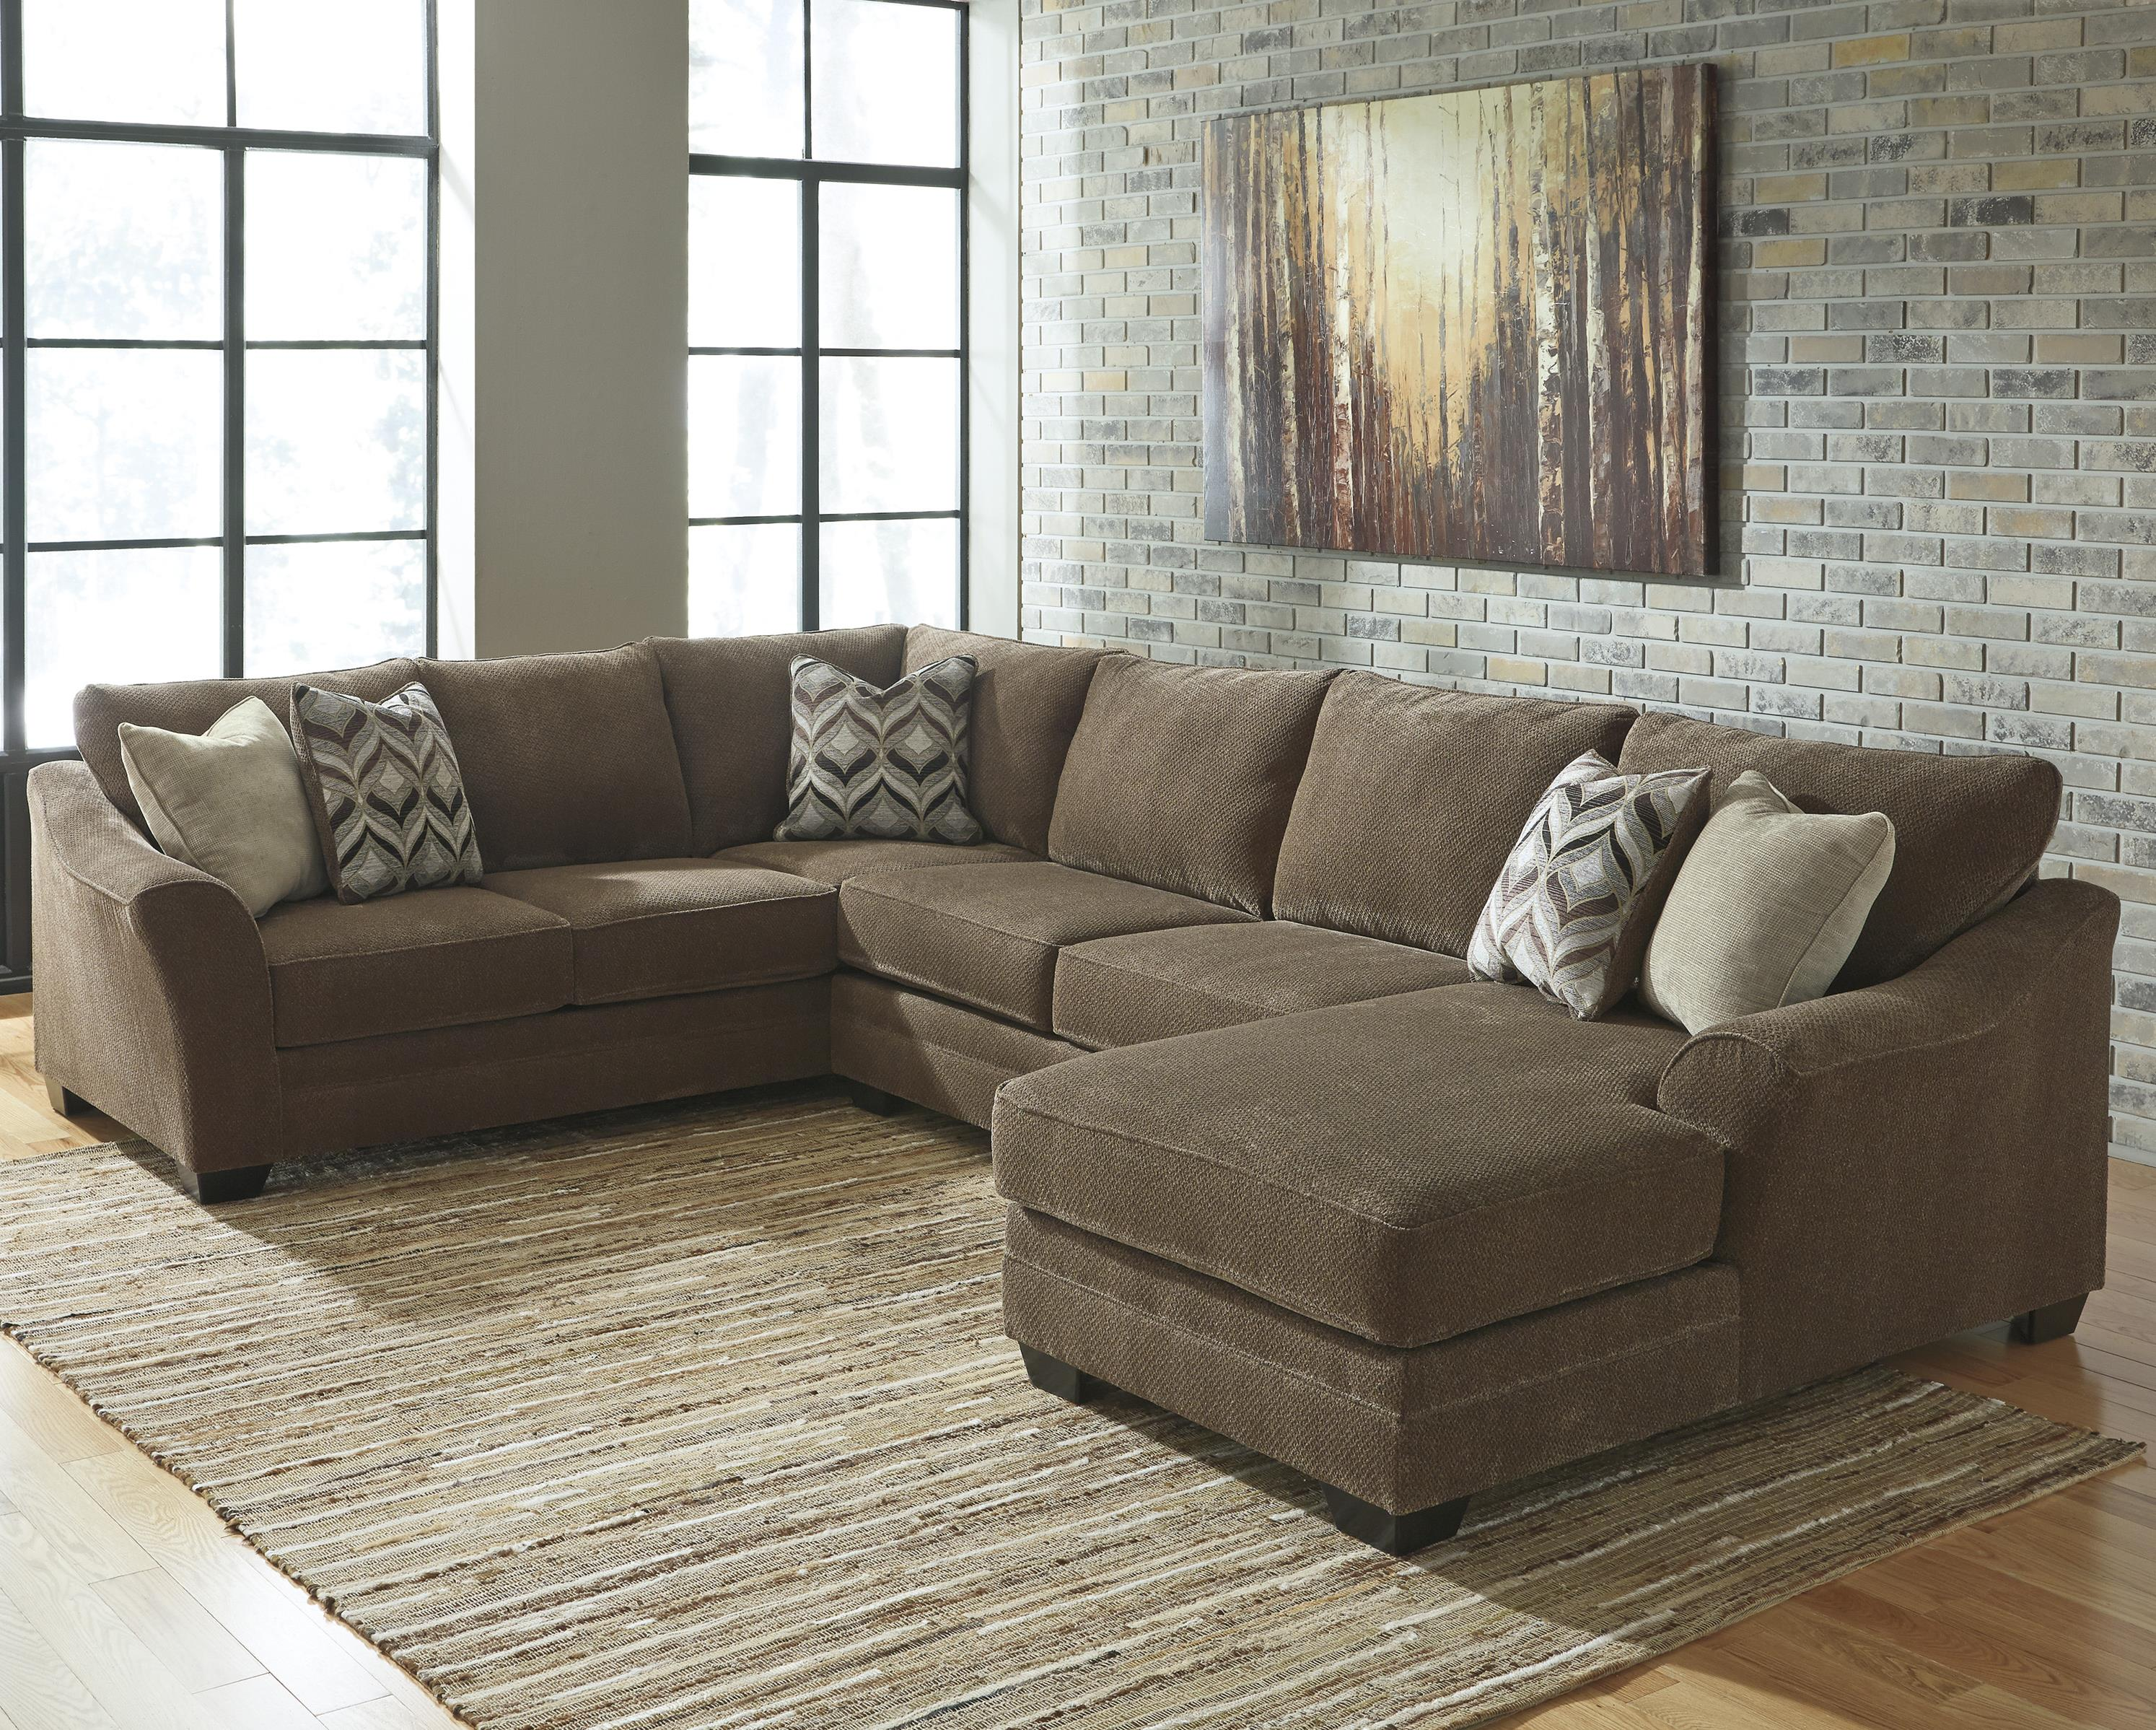 Benchcraft justyna contemporary 3 piece sectional with for 3 piece sectional sofas with chaise